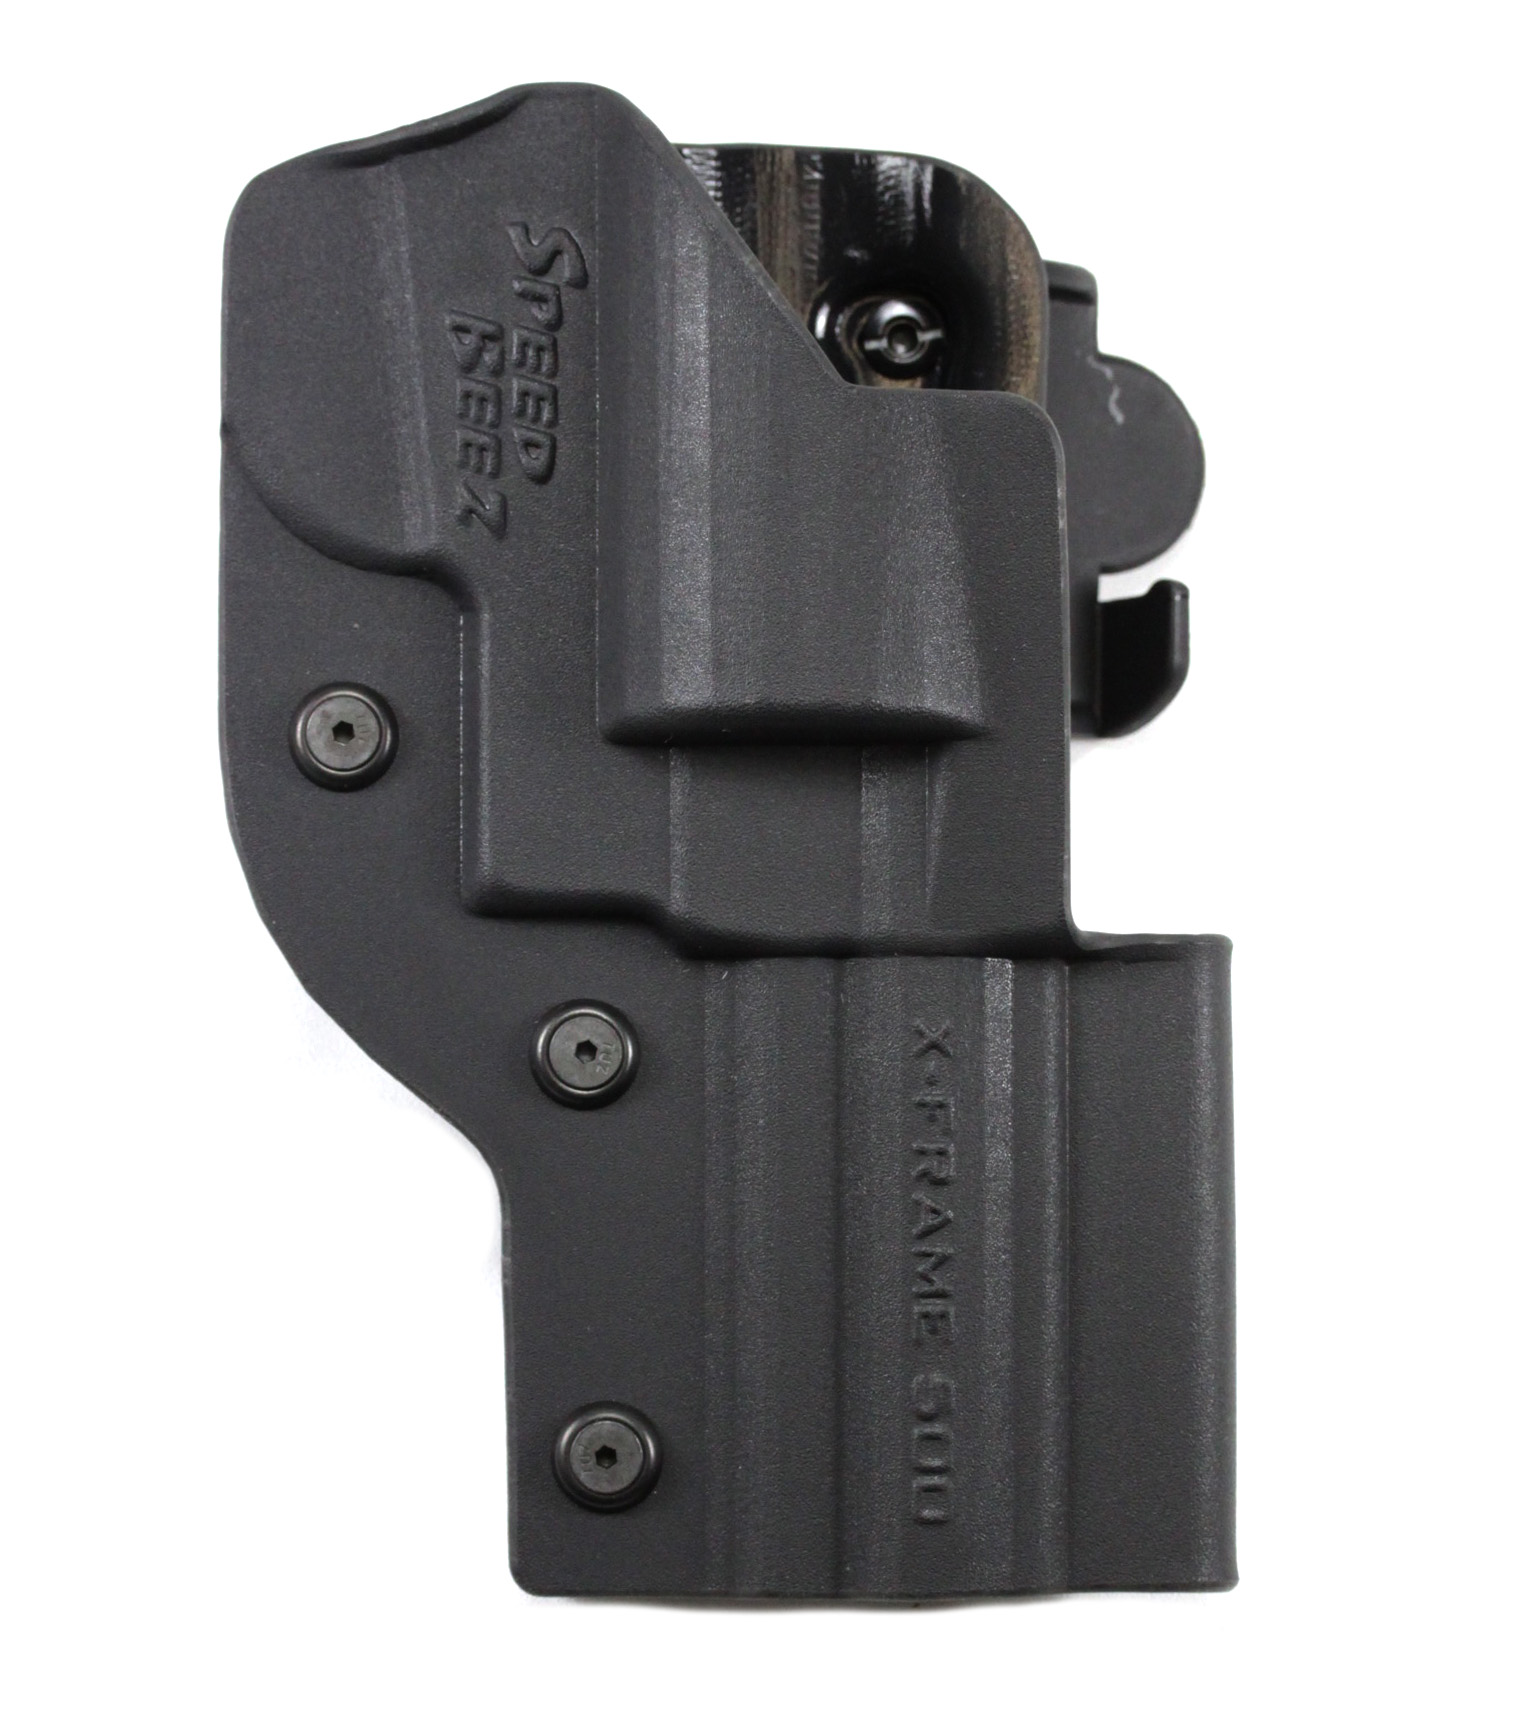 SPEED BEEZ® Smith & Wesson 500, 460 Tactical Revolver Holster Outside the  Waist Band (Fits Smith & Wesson X Frame)